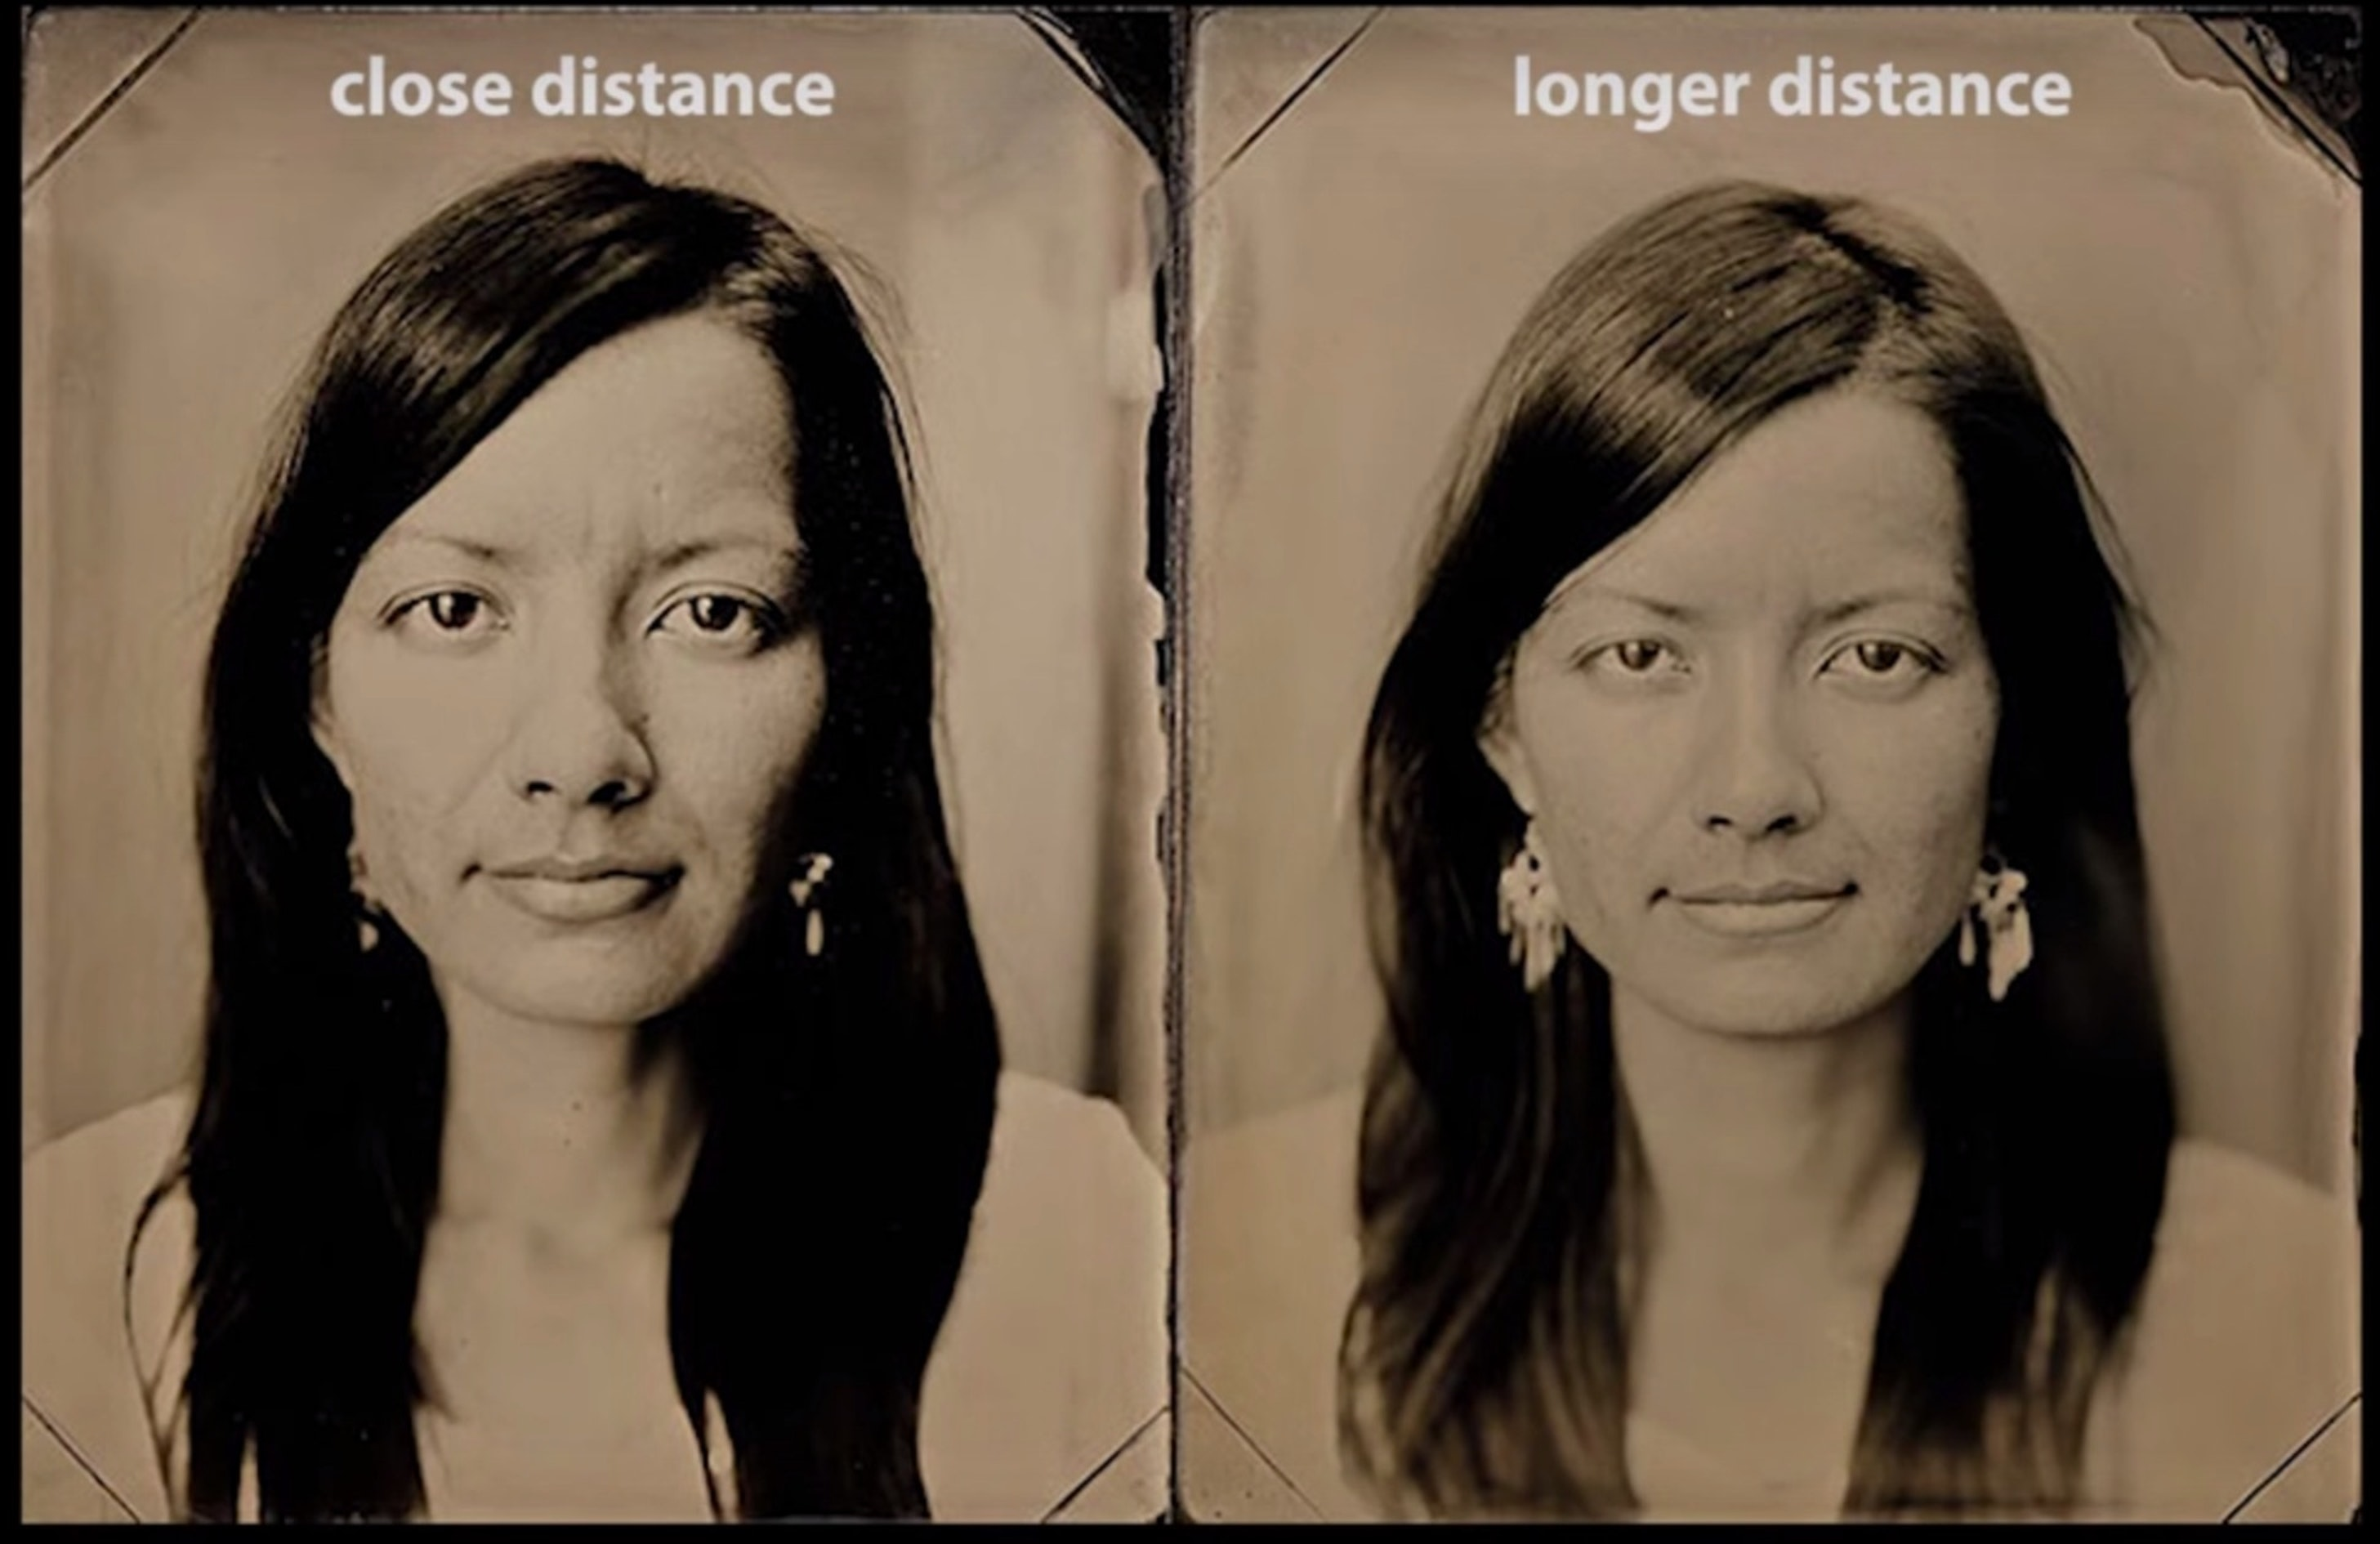 The differences between portraits taken from short distances and long distances are pretty major